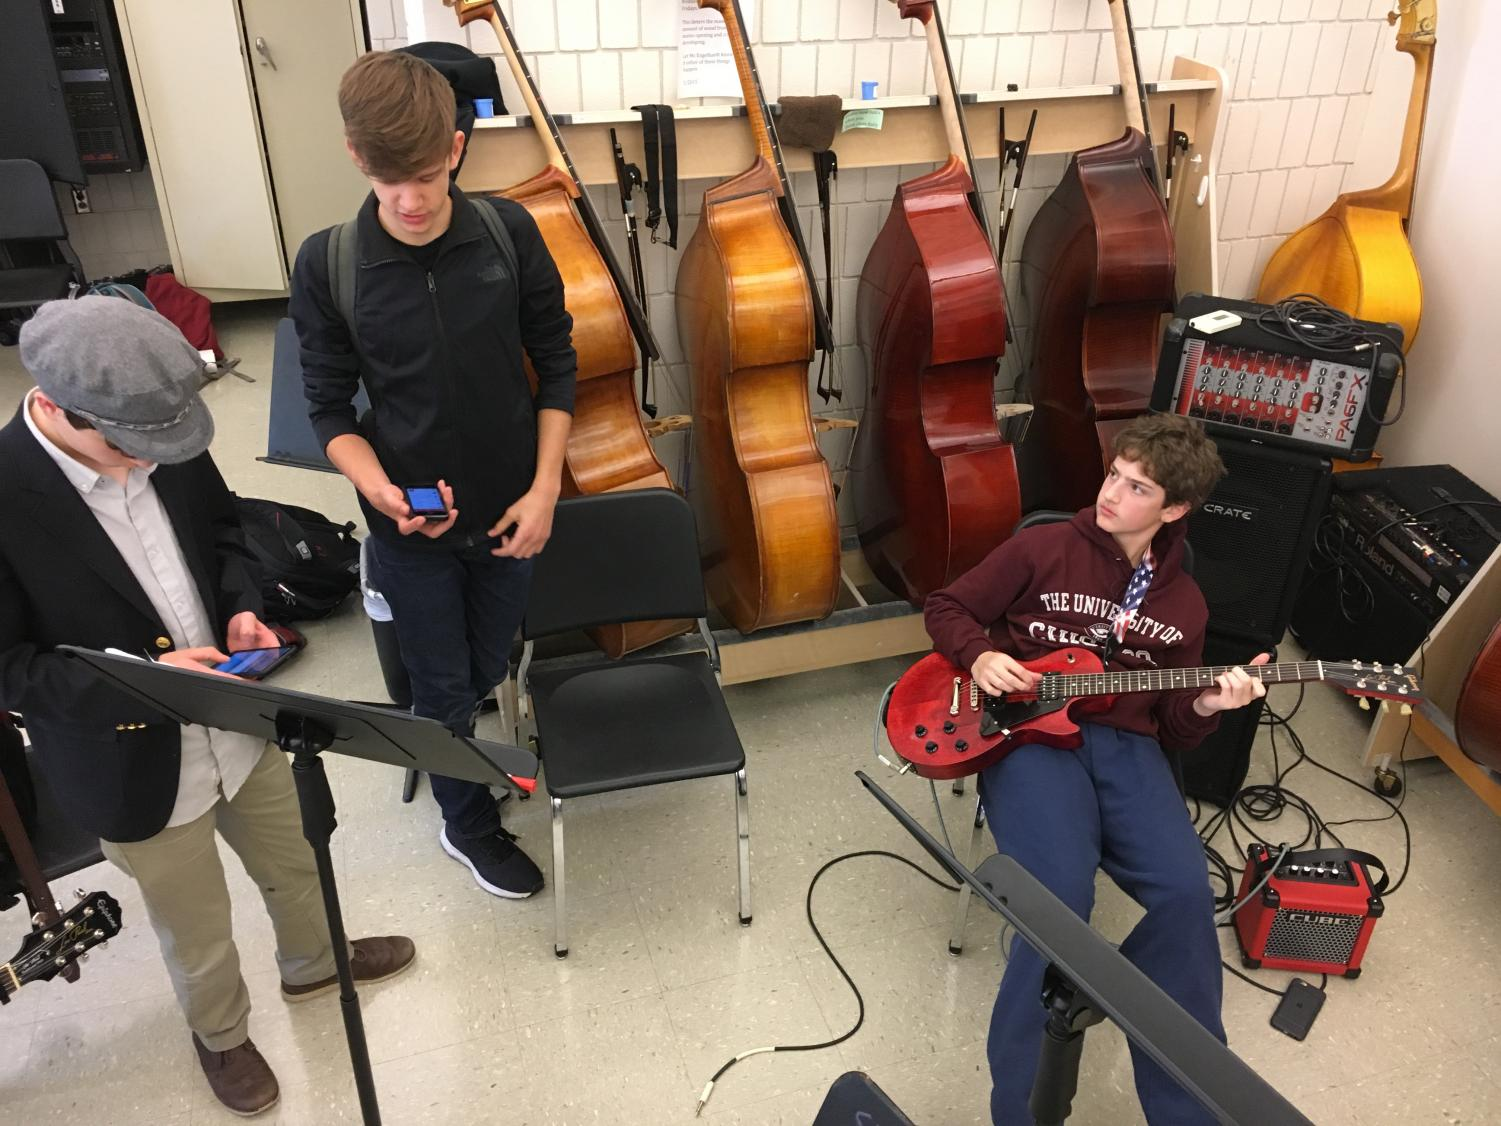 Ninth graders Henry Burkhardt and Nathan Mann, and sophomore Sam Konstan warm up before their band practices.